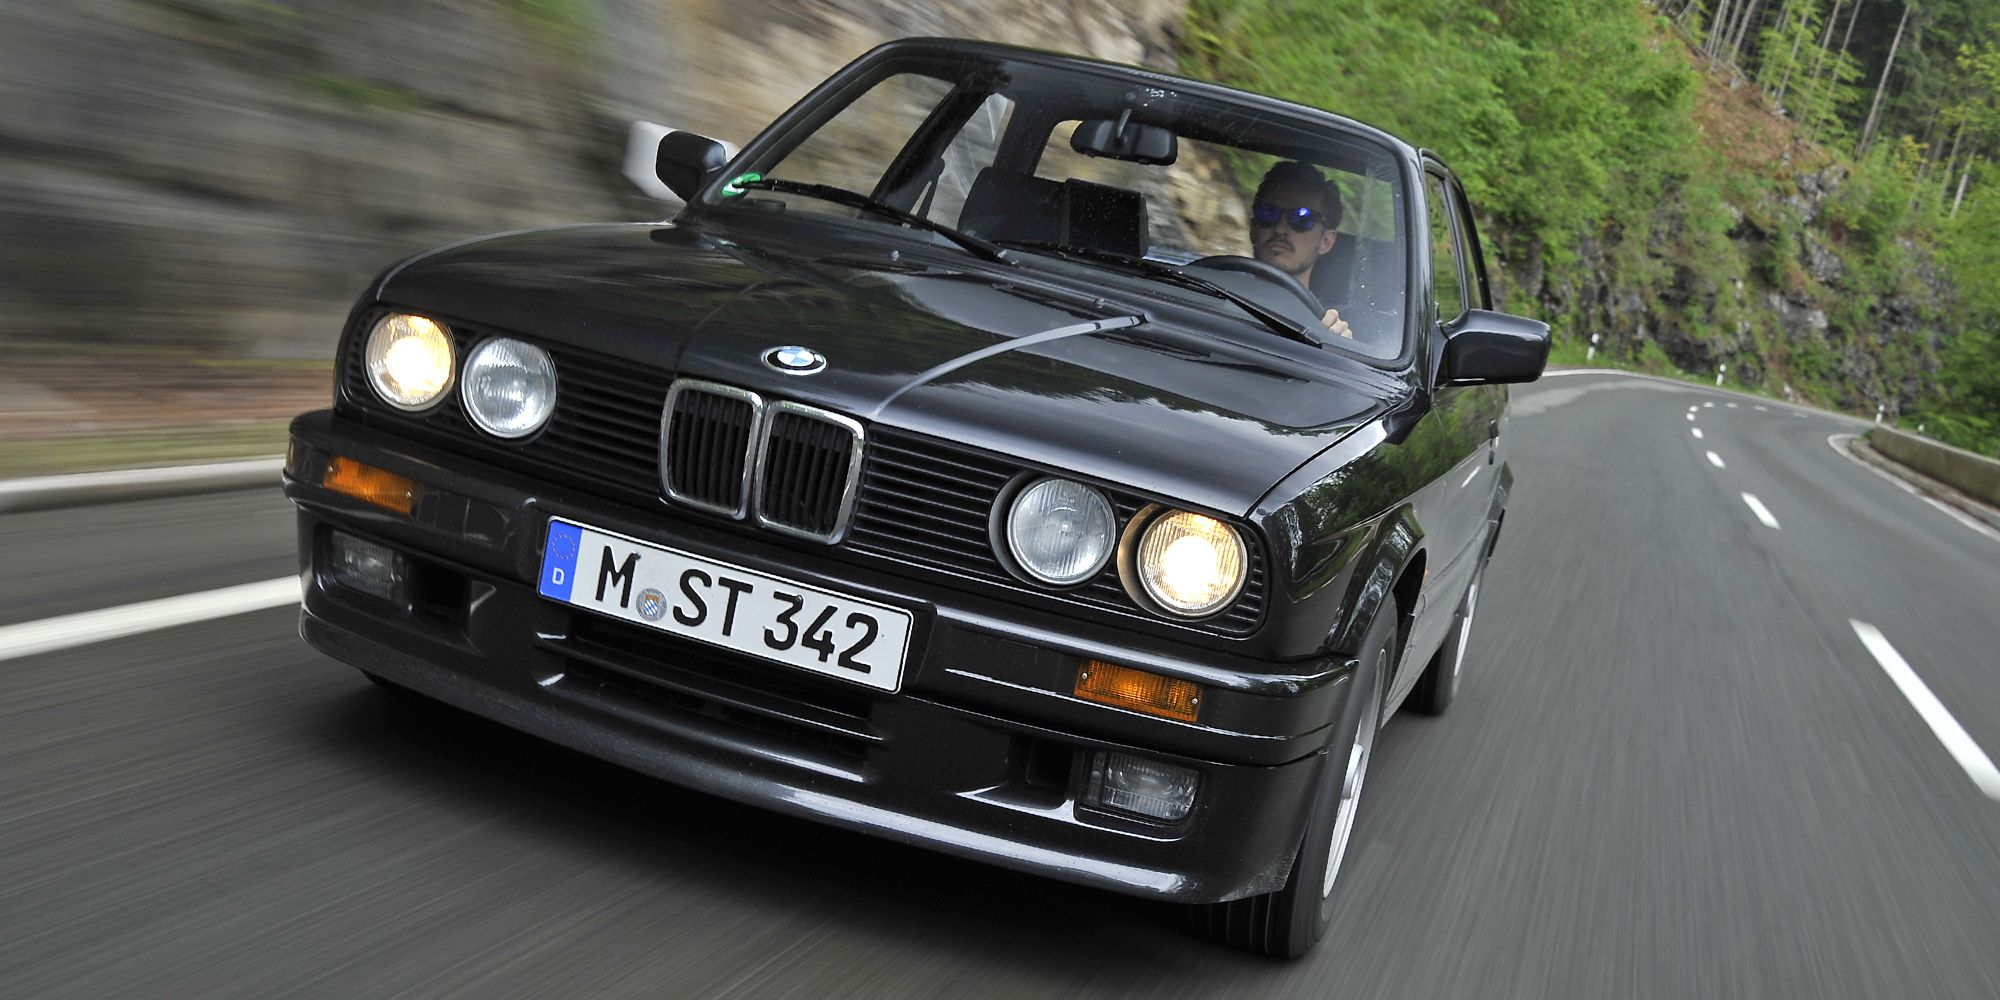 Ten Legendary Cars That Prove Bmw Peaked In The 1990s